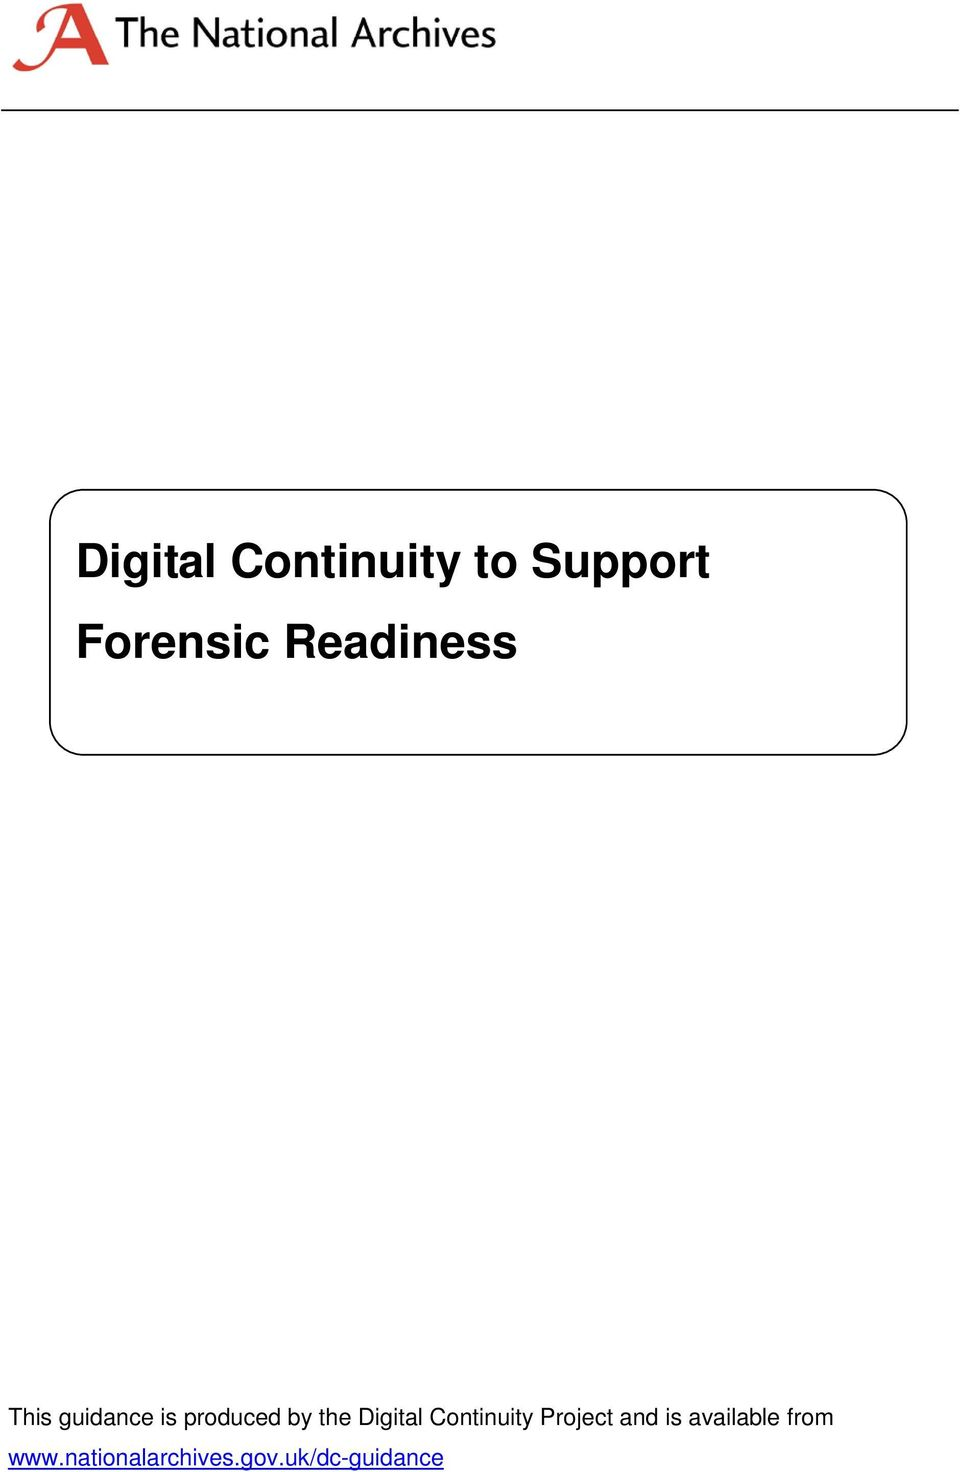 Digital Continuity Project and is